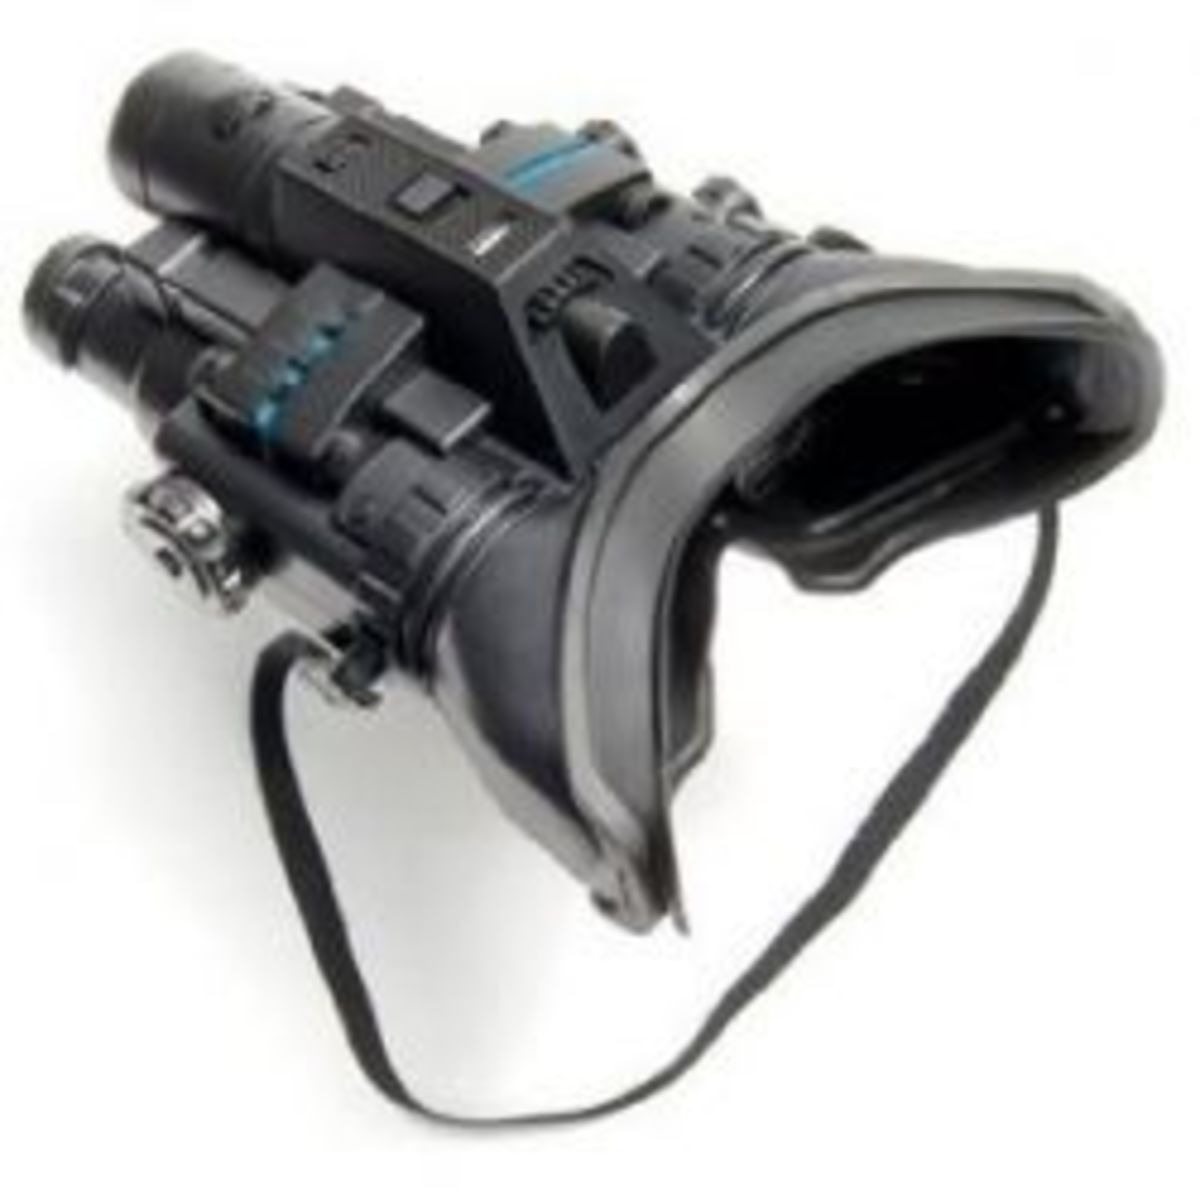 how to make night vision goggles work